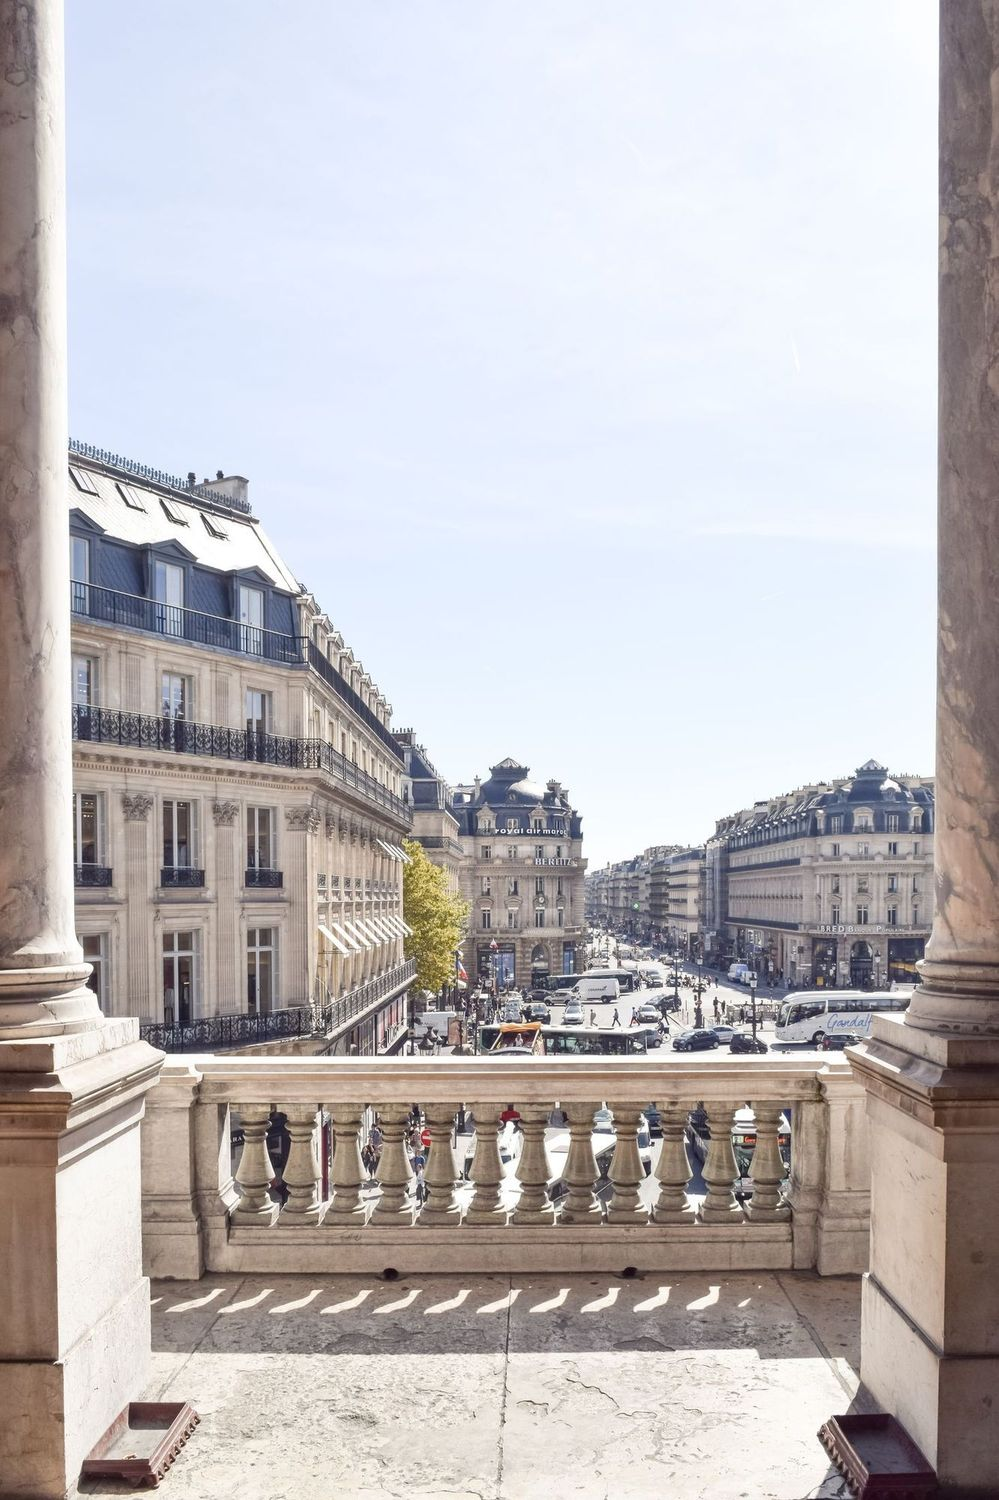 View of Place de l'Opéra, Palais Garnier Paris